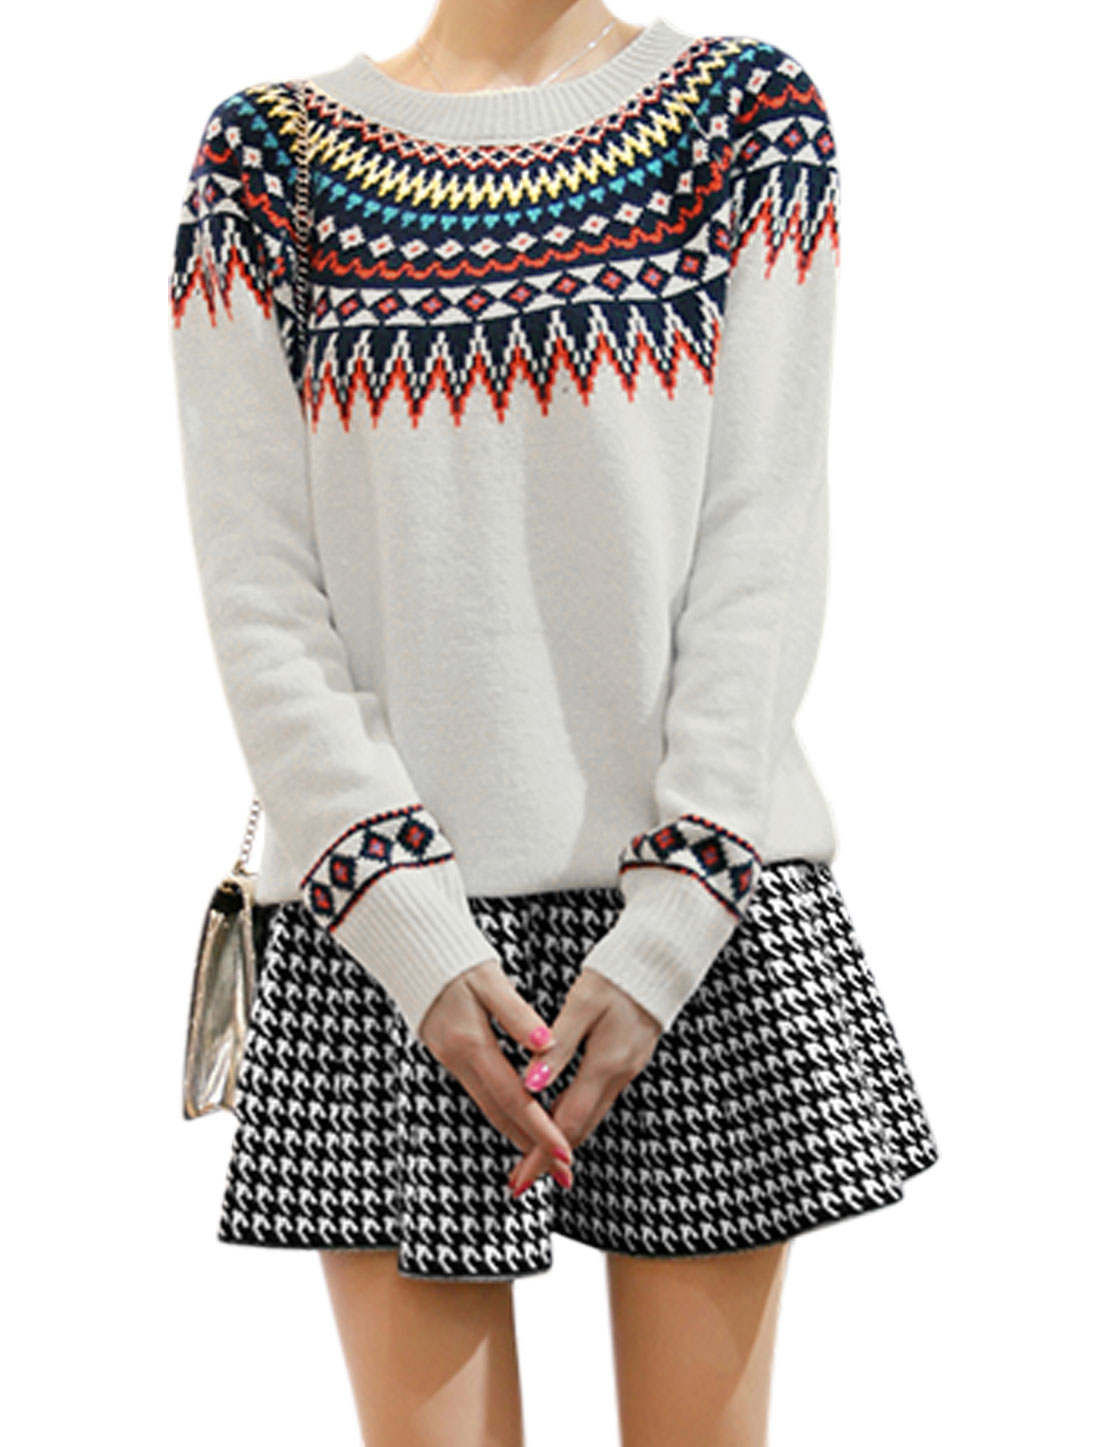 Women Argyle Pattern Sweater w High Waist Ruffled Skirt White S